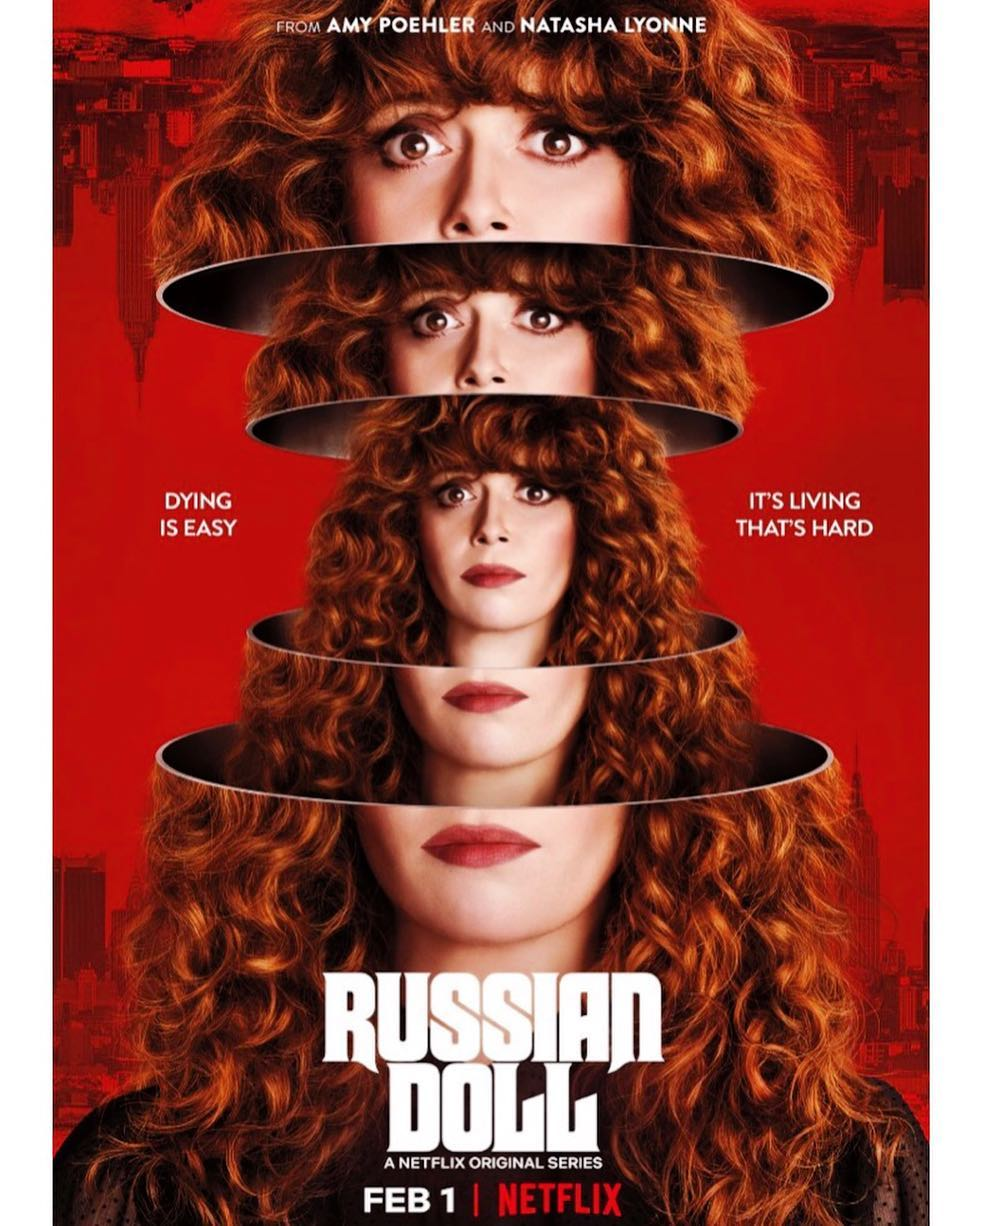 We made a show and it s pretty crazy and we hope you watch it. Russian Doll premieres February 1st on Netflix. Trailer link in bio. @russiandollnetflix